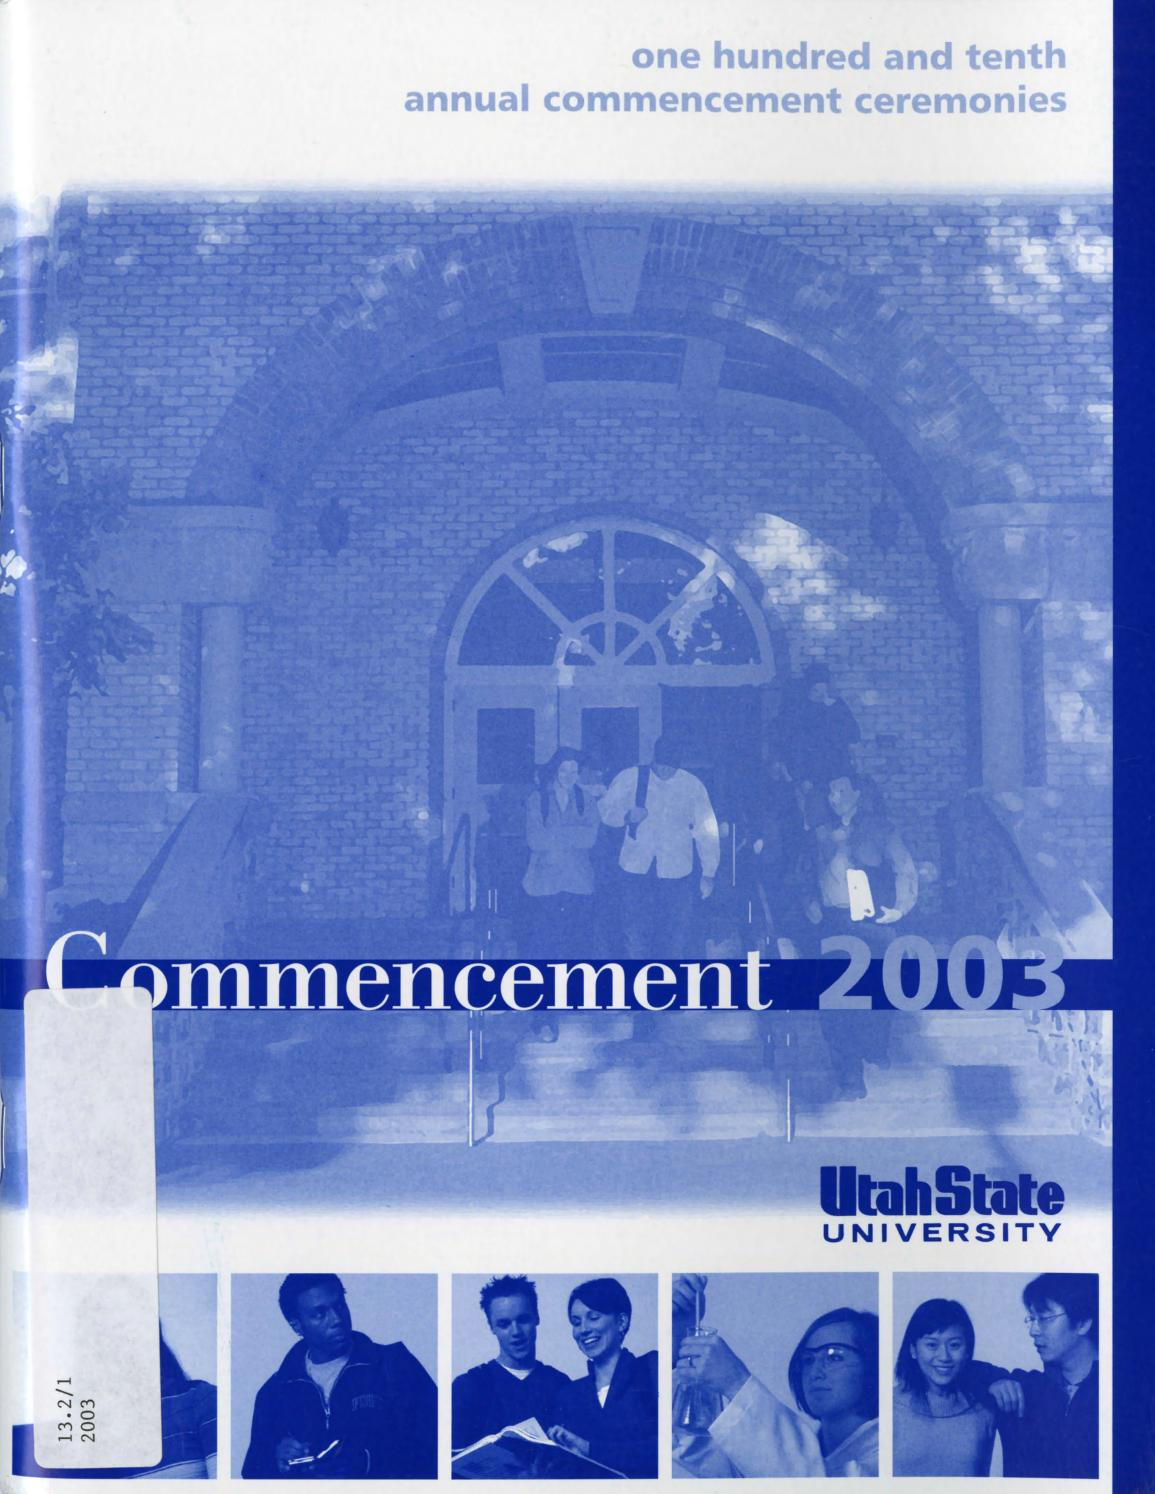 Utah State University Commencement, 2003 by USU Digital Commons - issuu